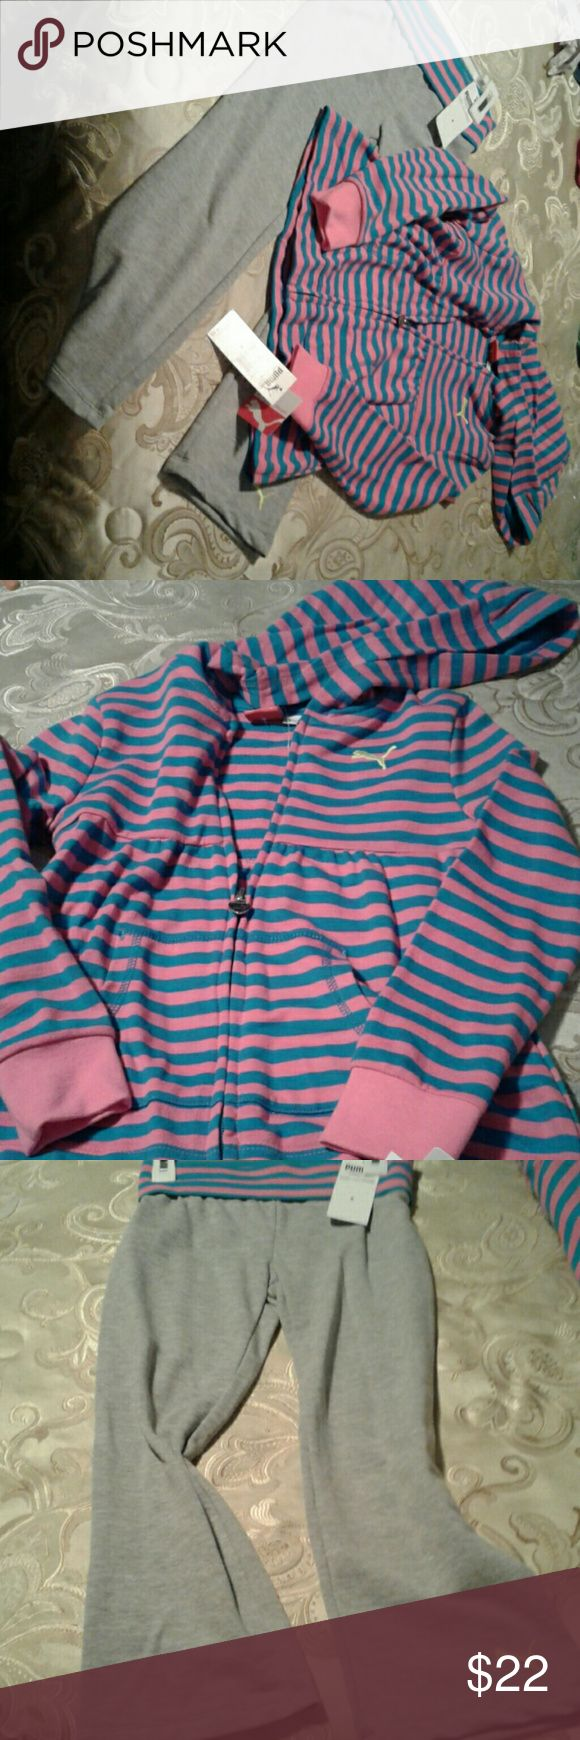 Girls Puma jogging suit New with tags has hood on jacket cute cute Puma Matching Sets